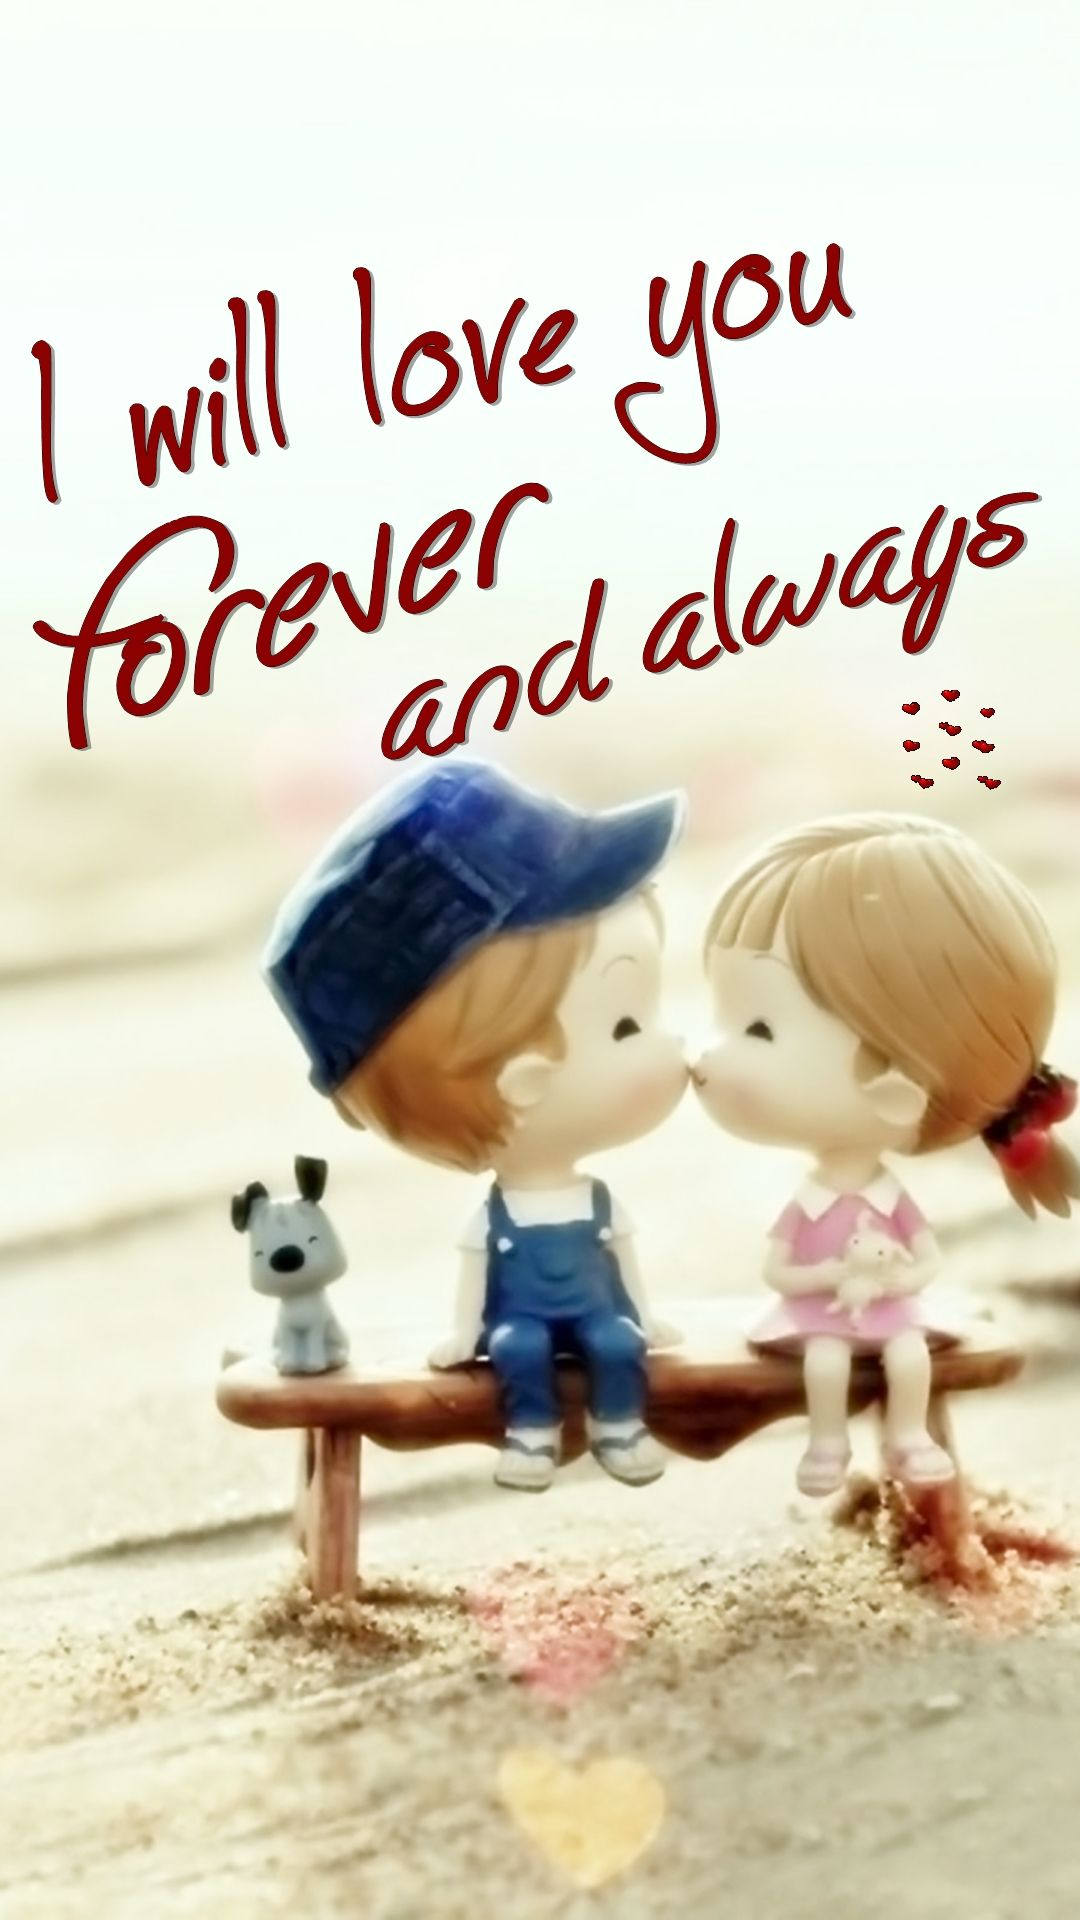 tap image for more love wallpapers! love you forever - @mobile9